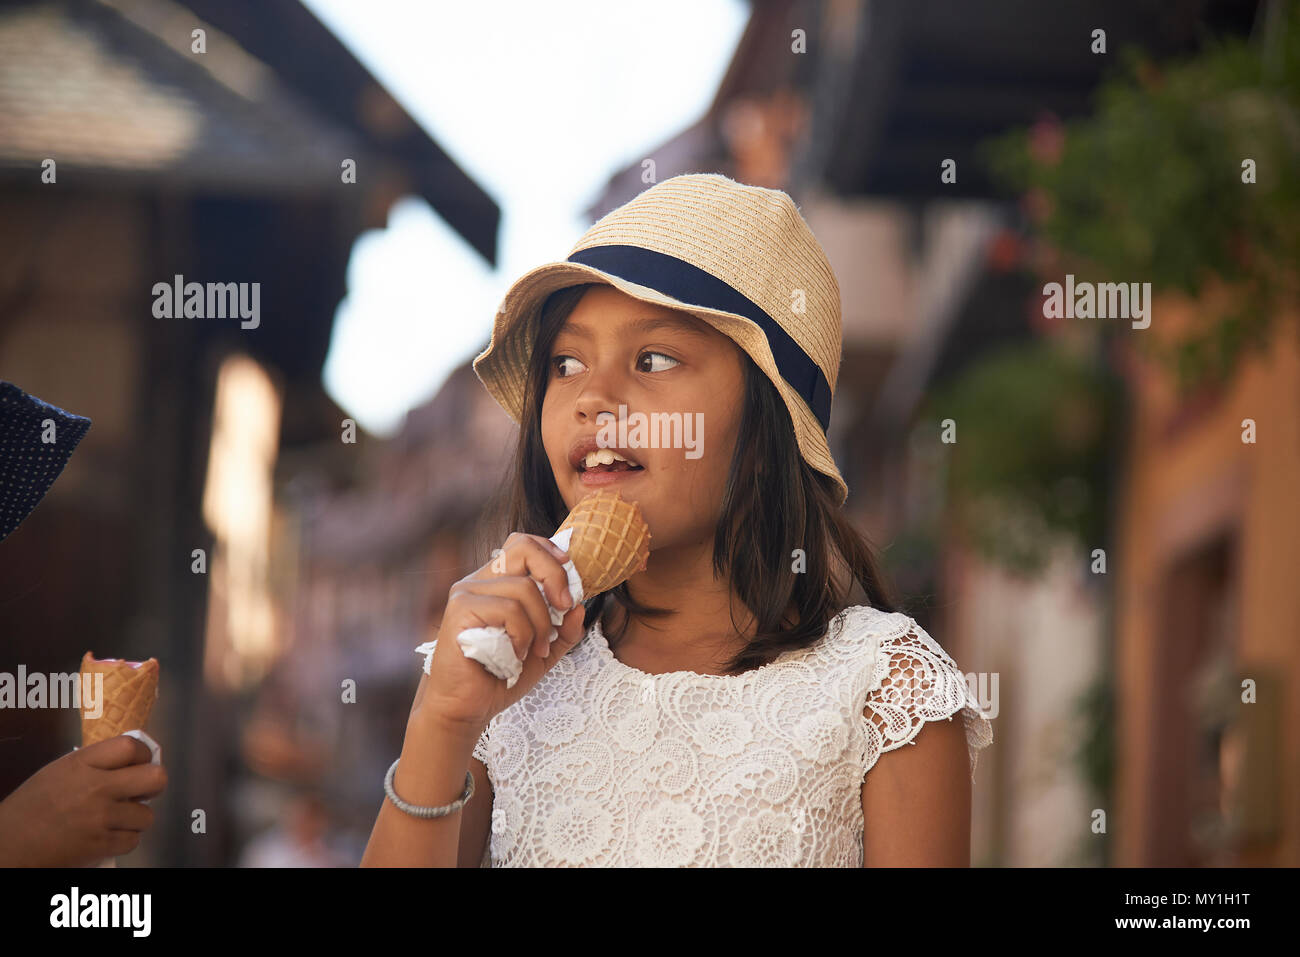 Little cute Asian girl wearing a straw hat eating icecream whilst on holiday in the Alsace region of France in summer sunshine on a hot day - Stock Image